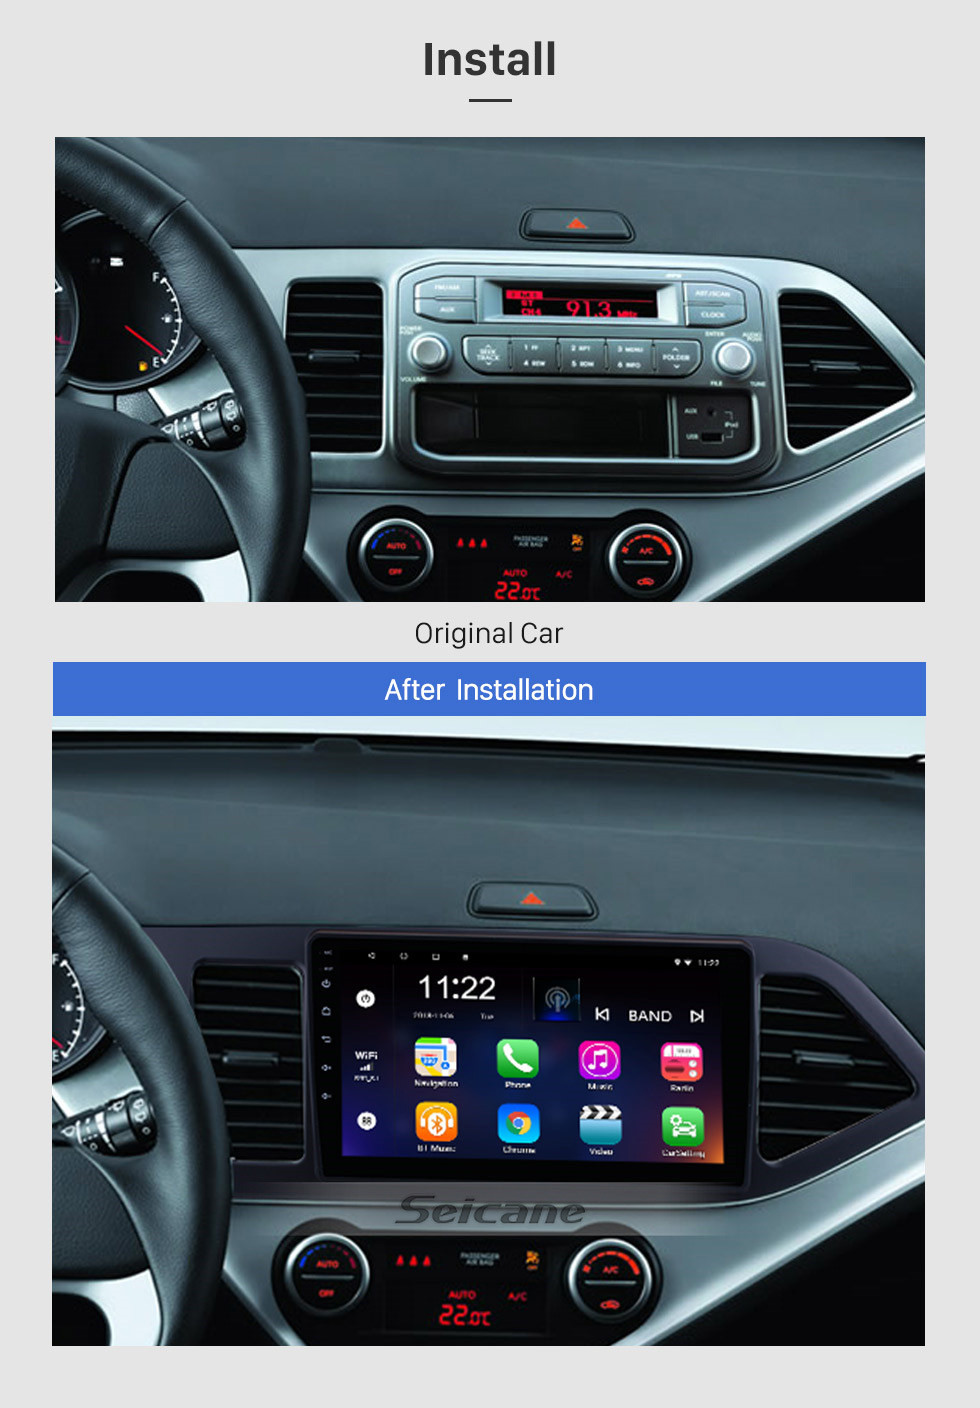 Seicane 9 inch Android 10.0 GPS Radio for 2011-2014 KIA PICANTO Morning (LHD) 1024*600 Touch Screen Bluetooth Navigation system Mirror link OBD2 DVR  Backup Camera TV 3G WIFI USB SD 16G Flash 1080P Video